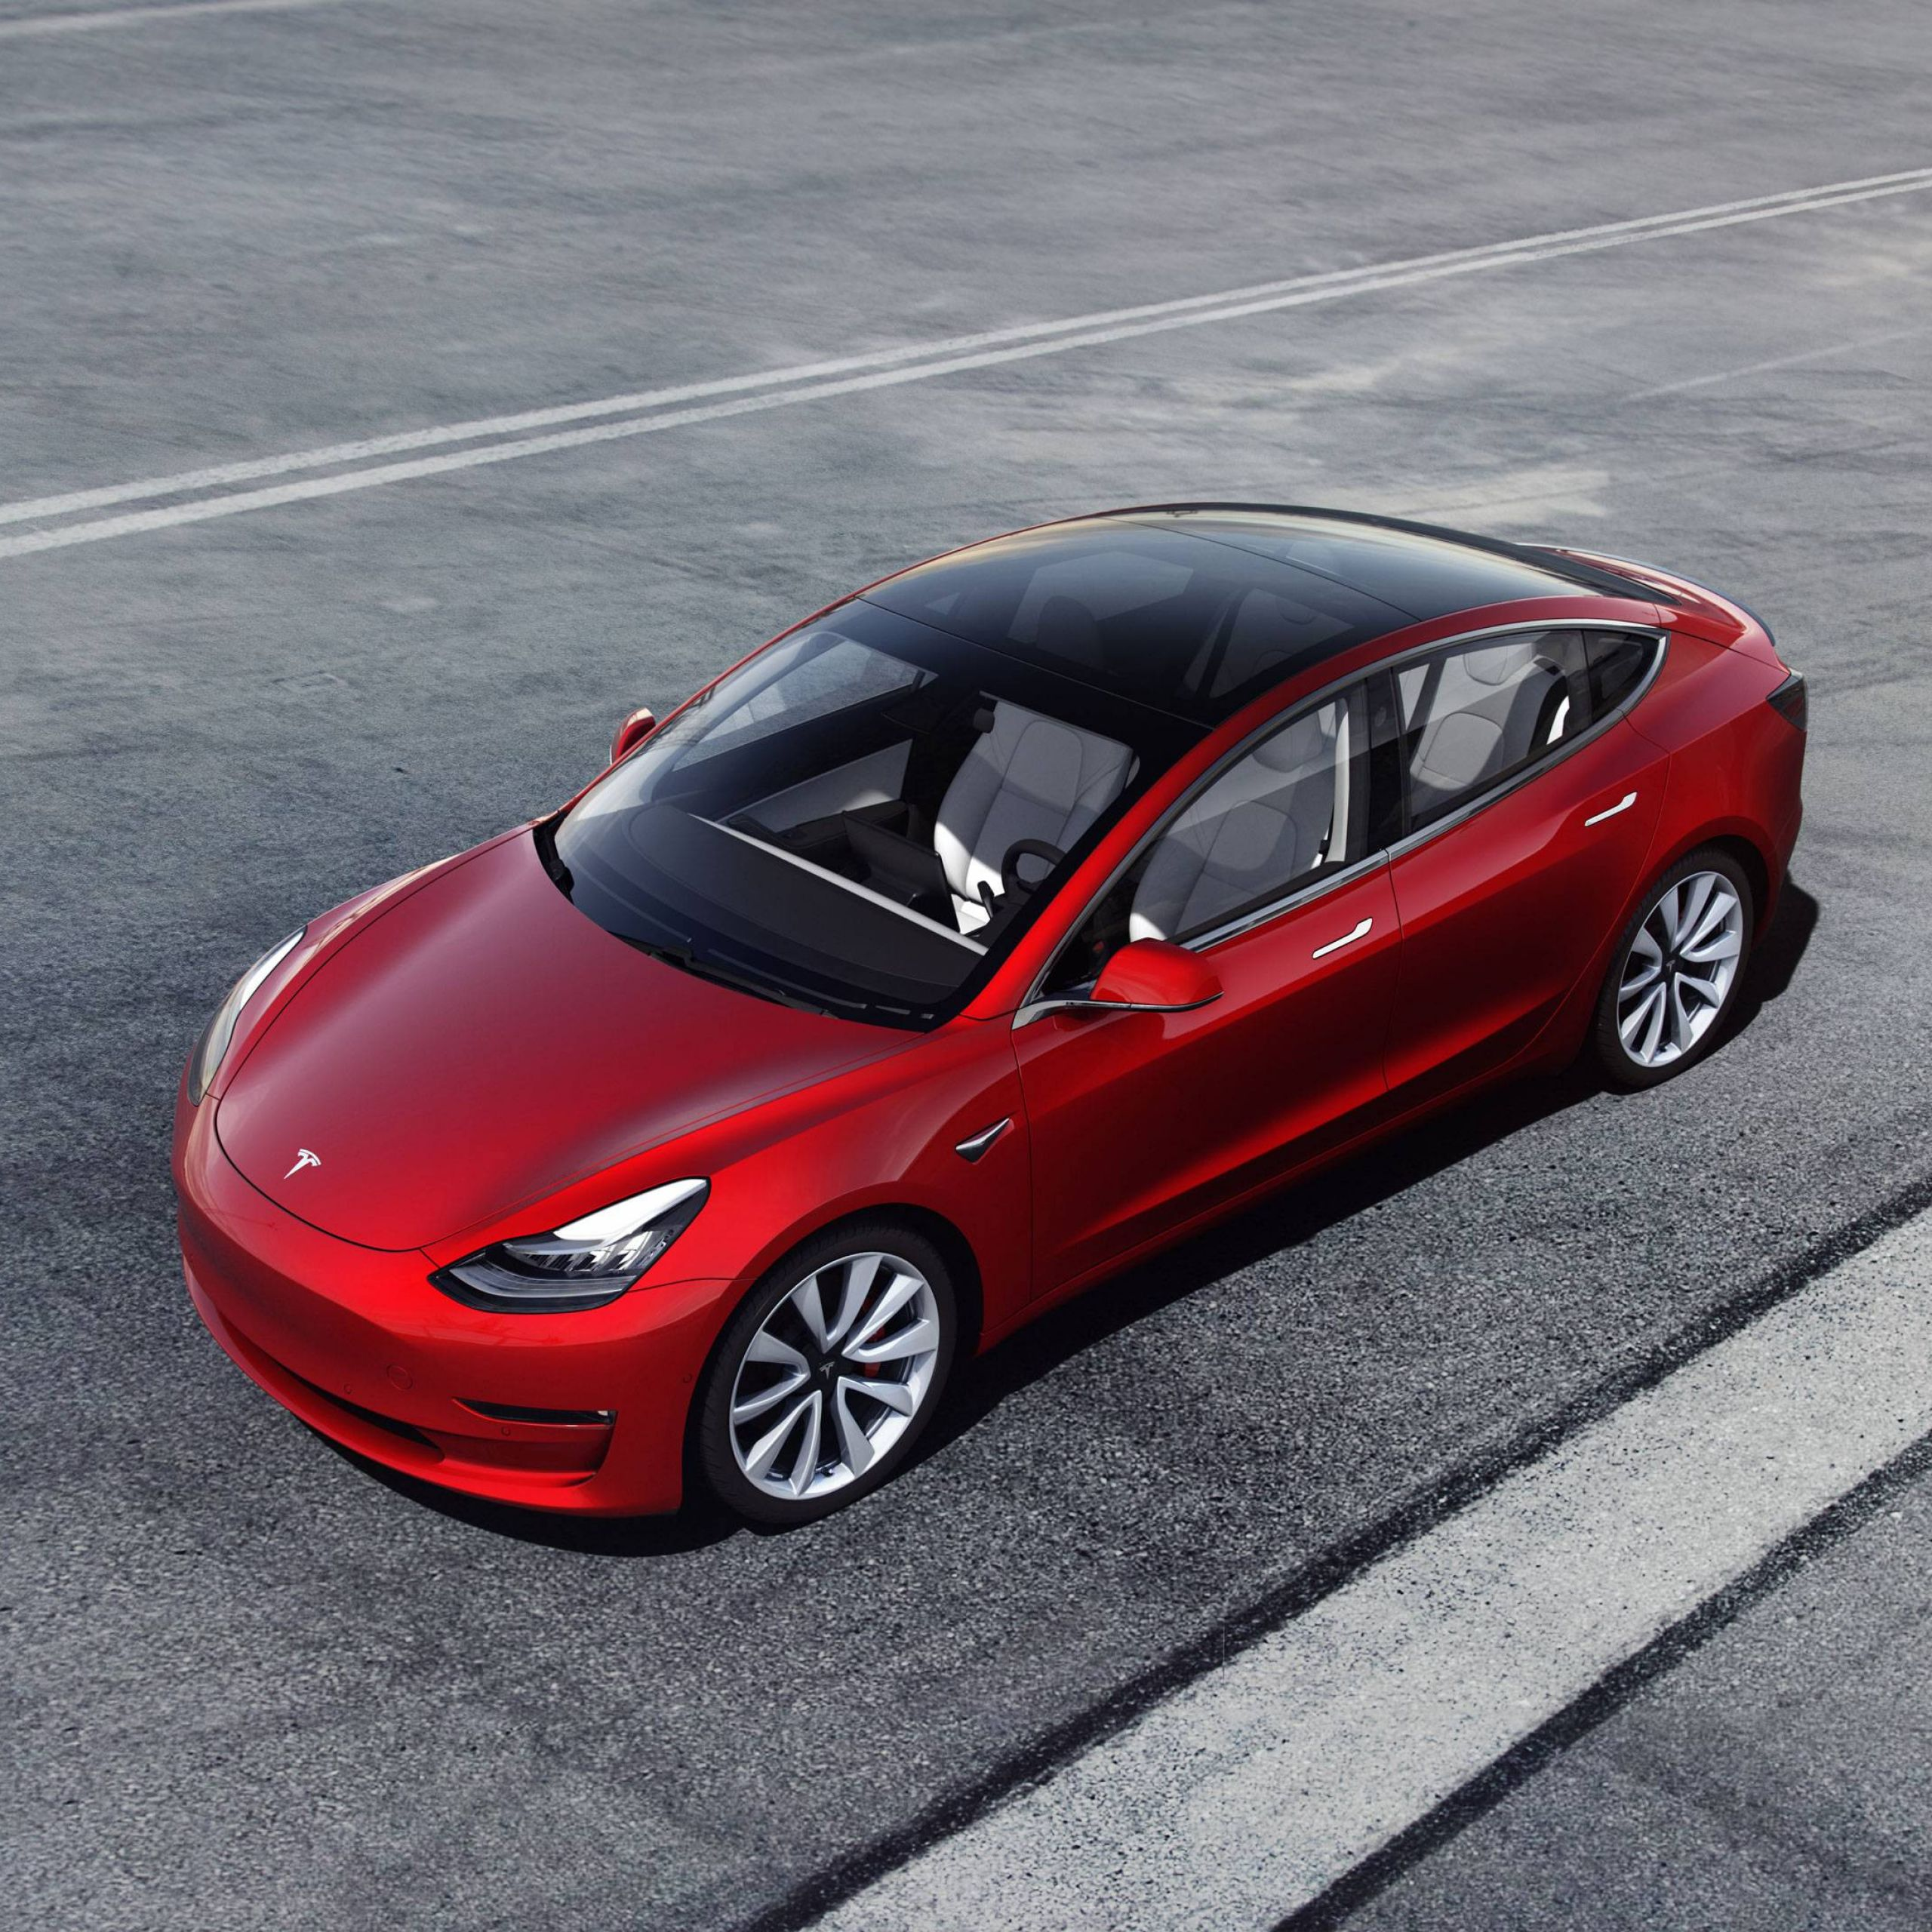 Tesla Free Energy Awesome Tesla Model 3 Review Worth the Wait but Not so Cheap after